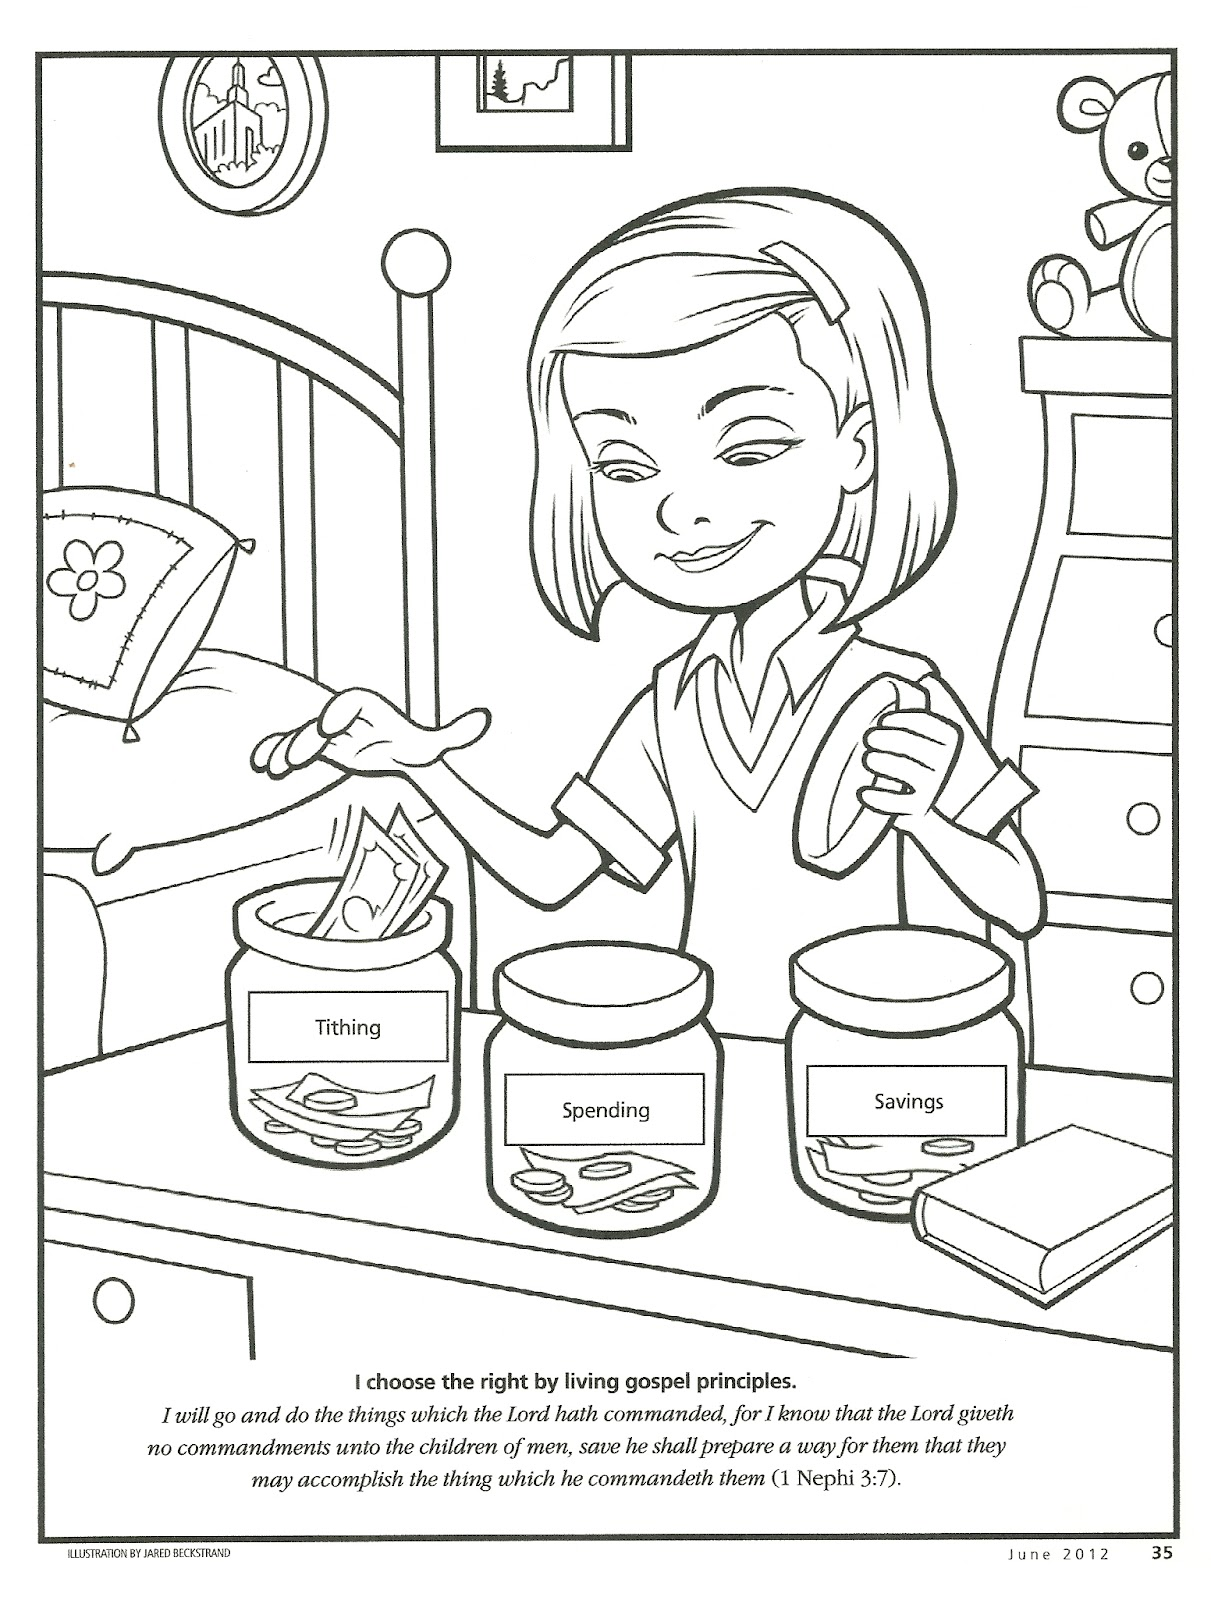 church offering coloring pages - photo#4